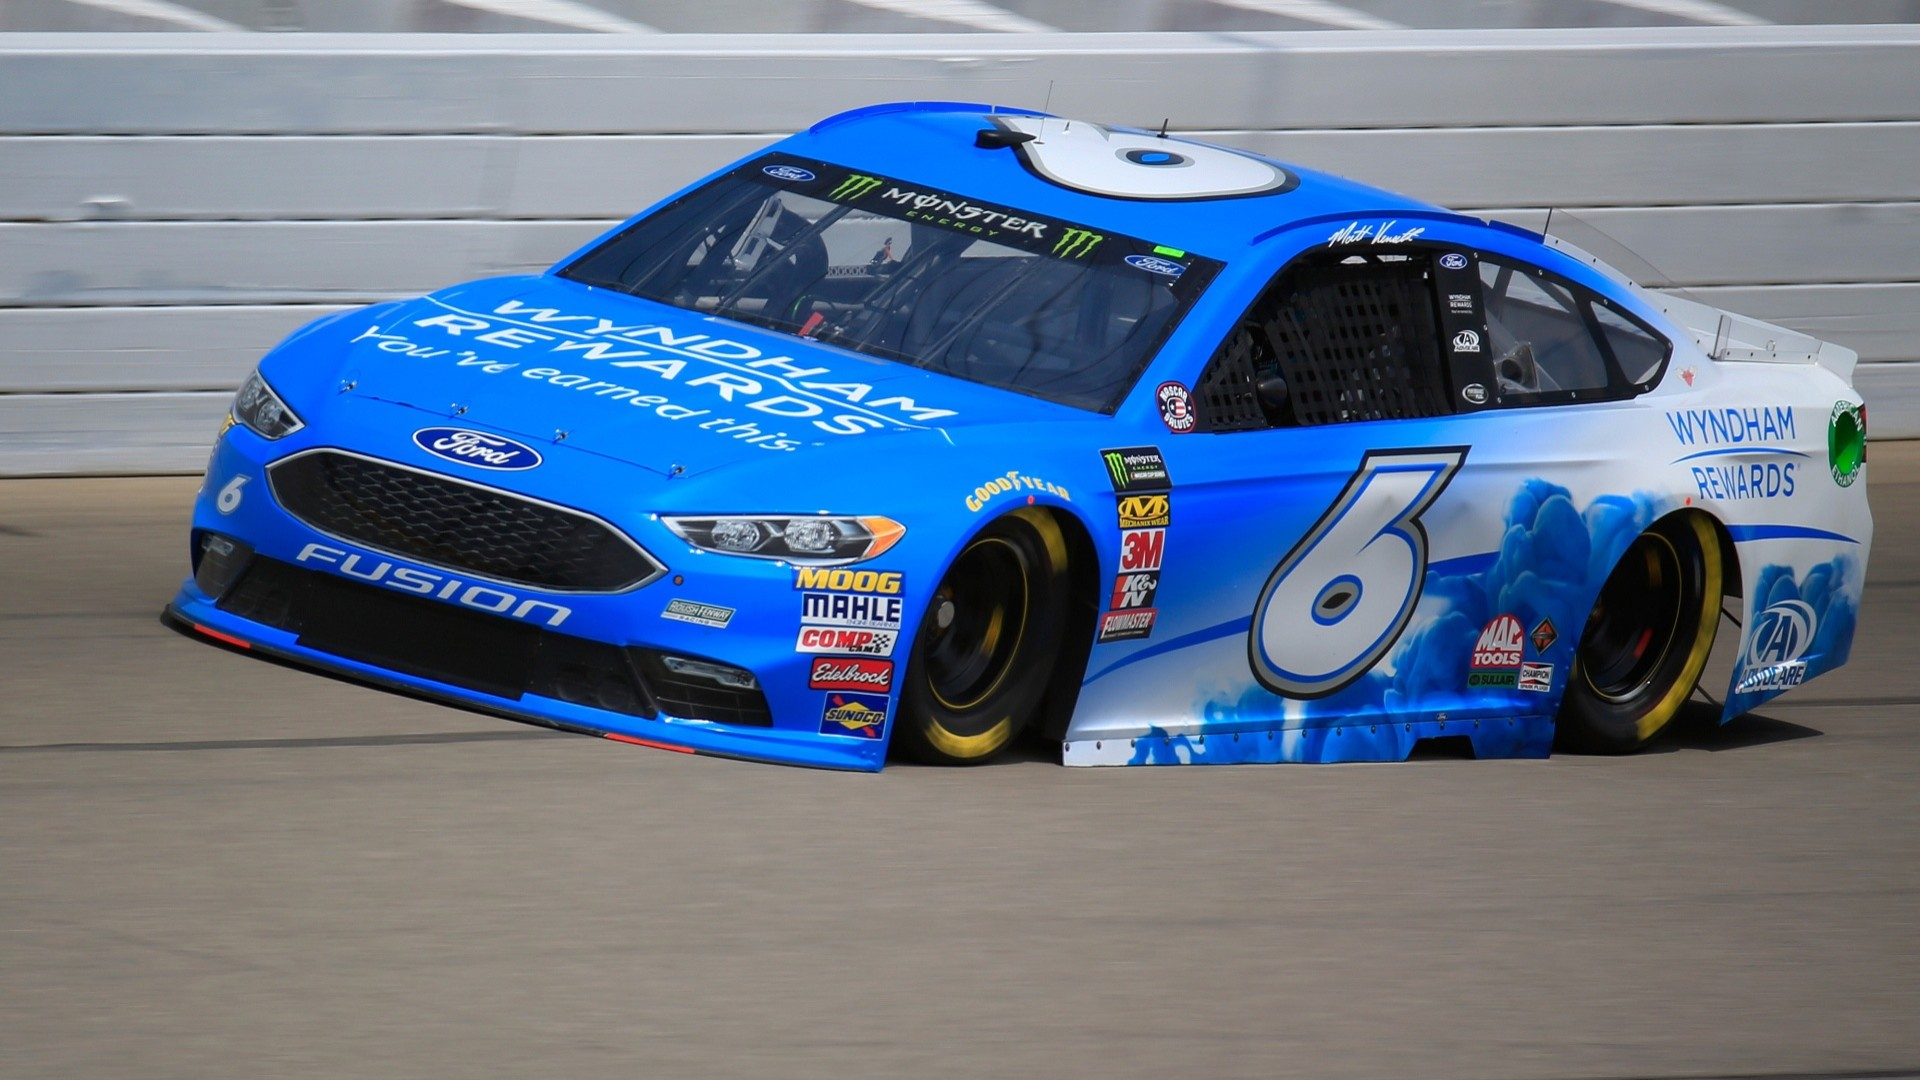 Matt Kenseth wins Stage 2 of NASCAR Cup Brickyard 400 at Indianapolis